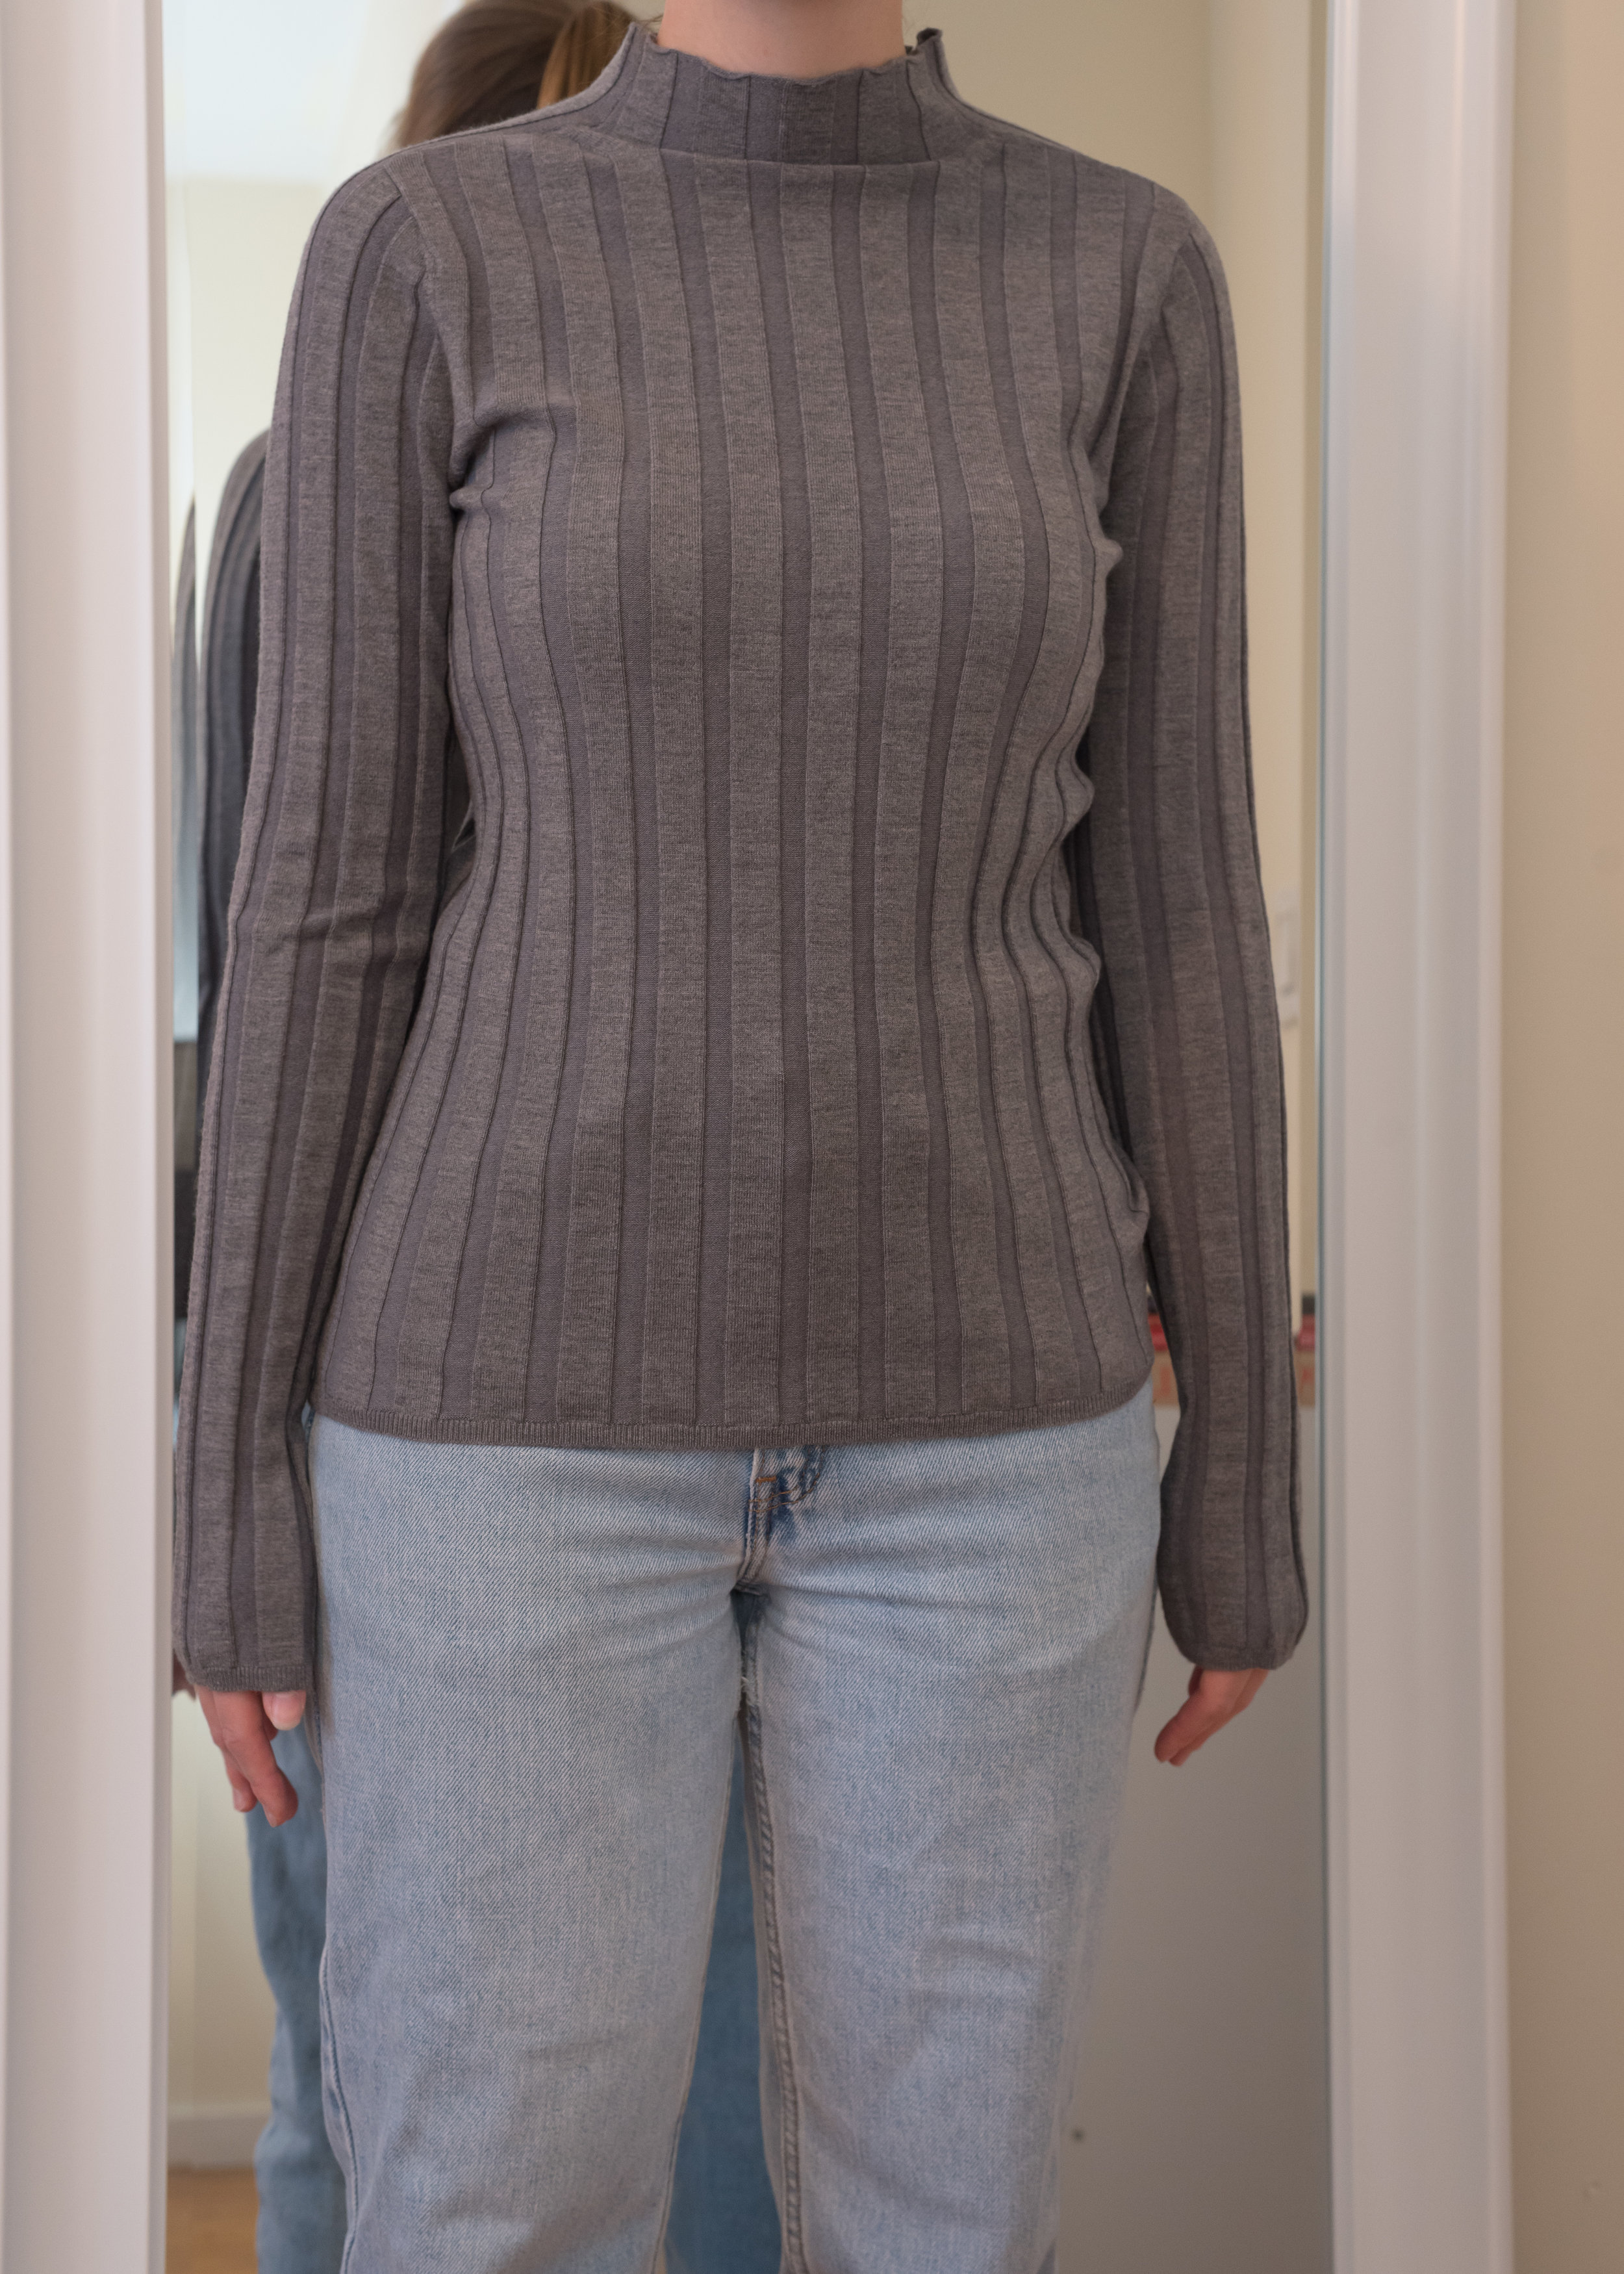 Everlane Luxe Wool Rib Mockneck Sweater - Front View